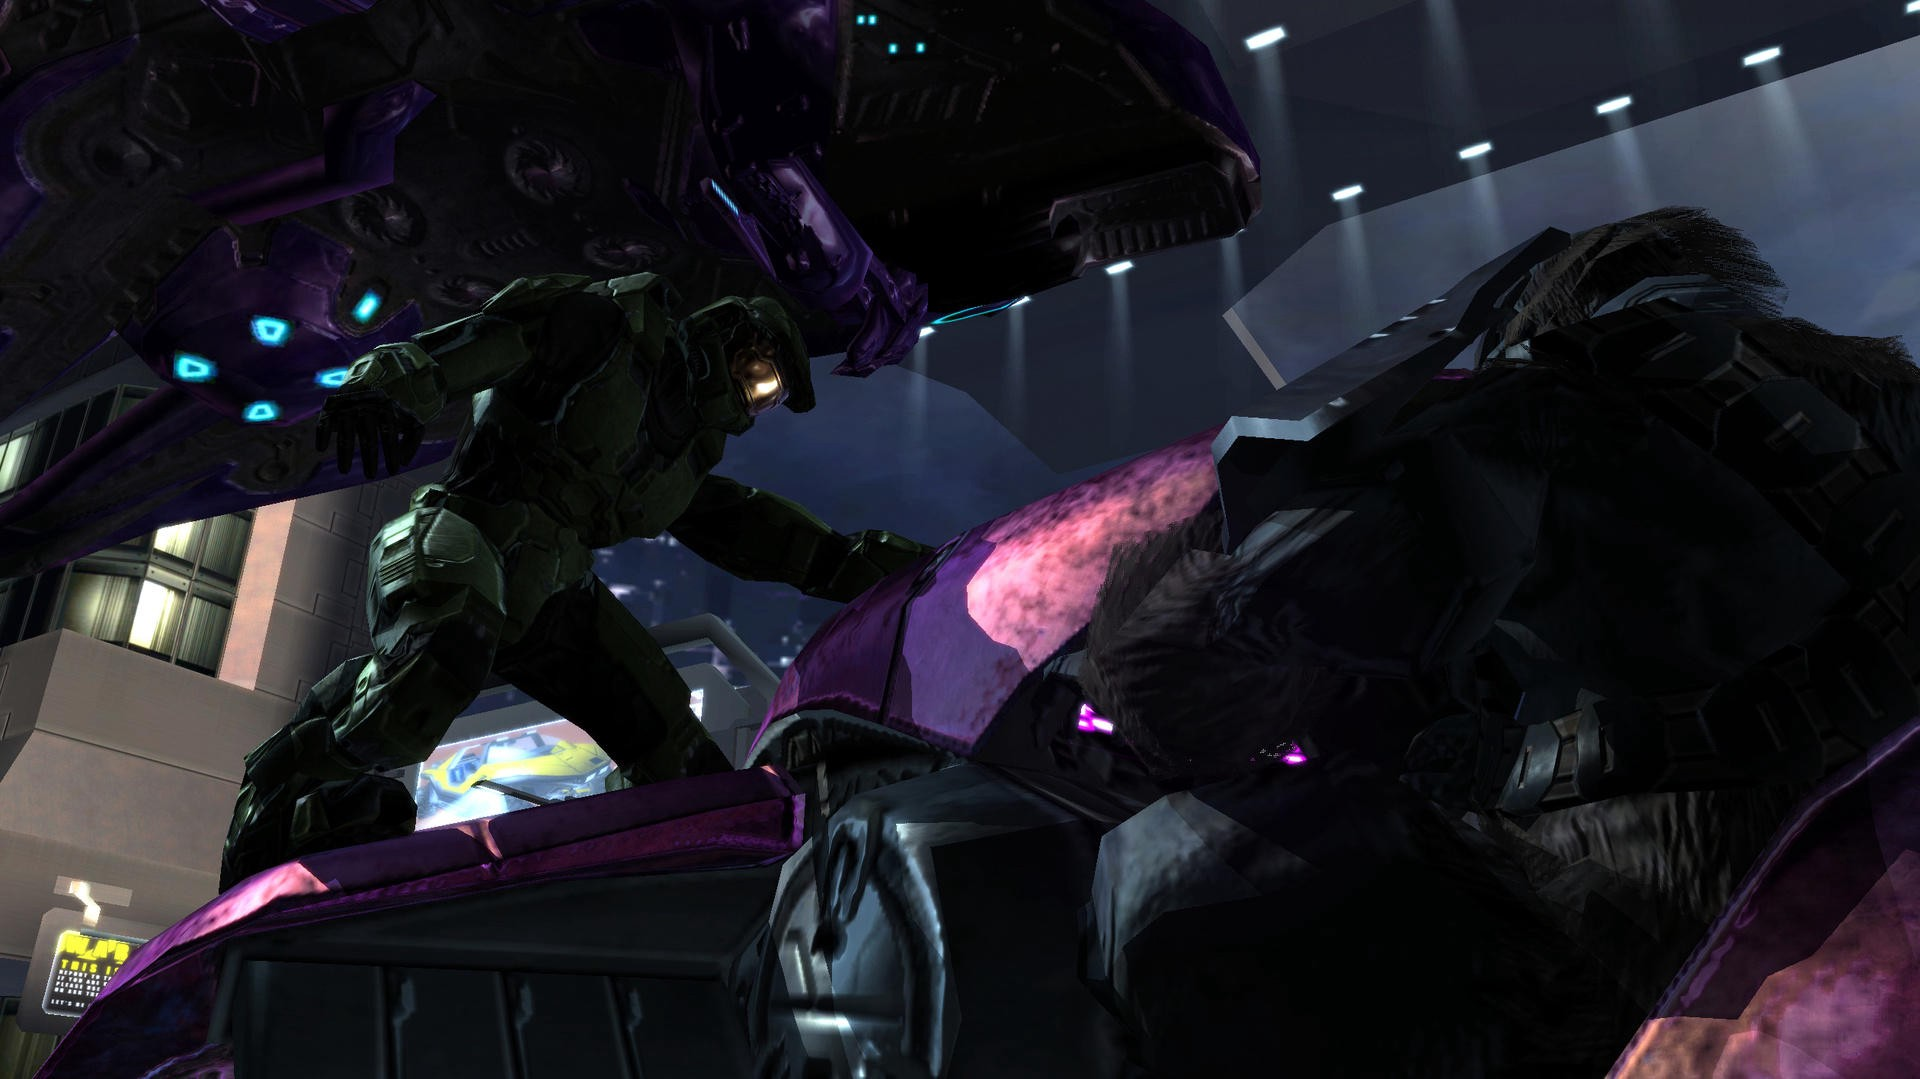 An Oral History of the Halo 2 E3 2003 Demo - Andrew G  - Medium